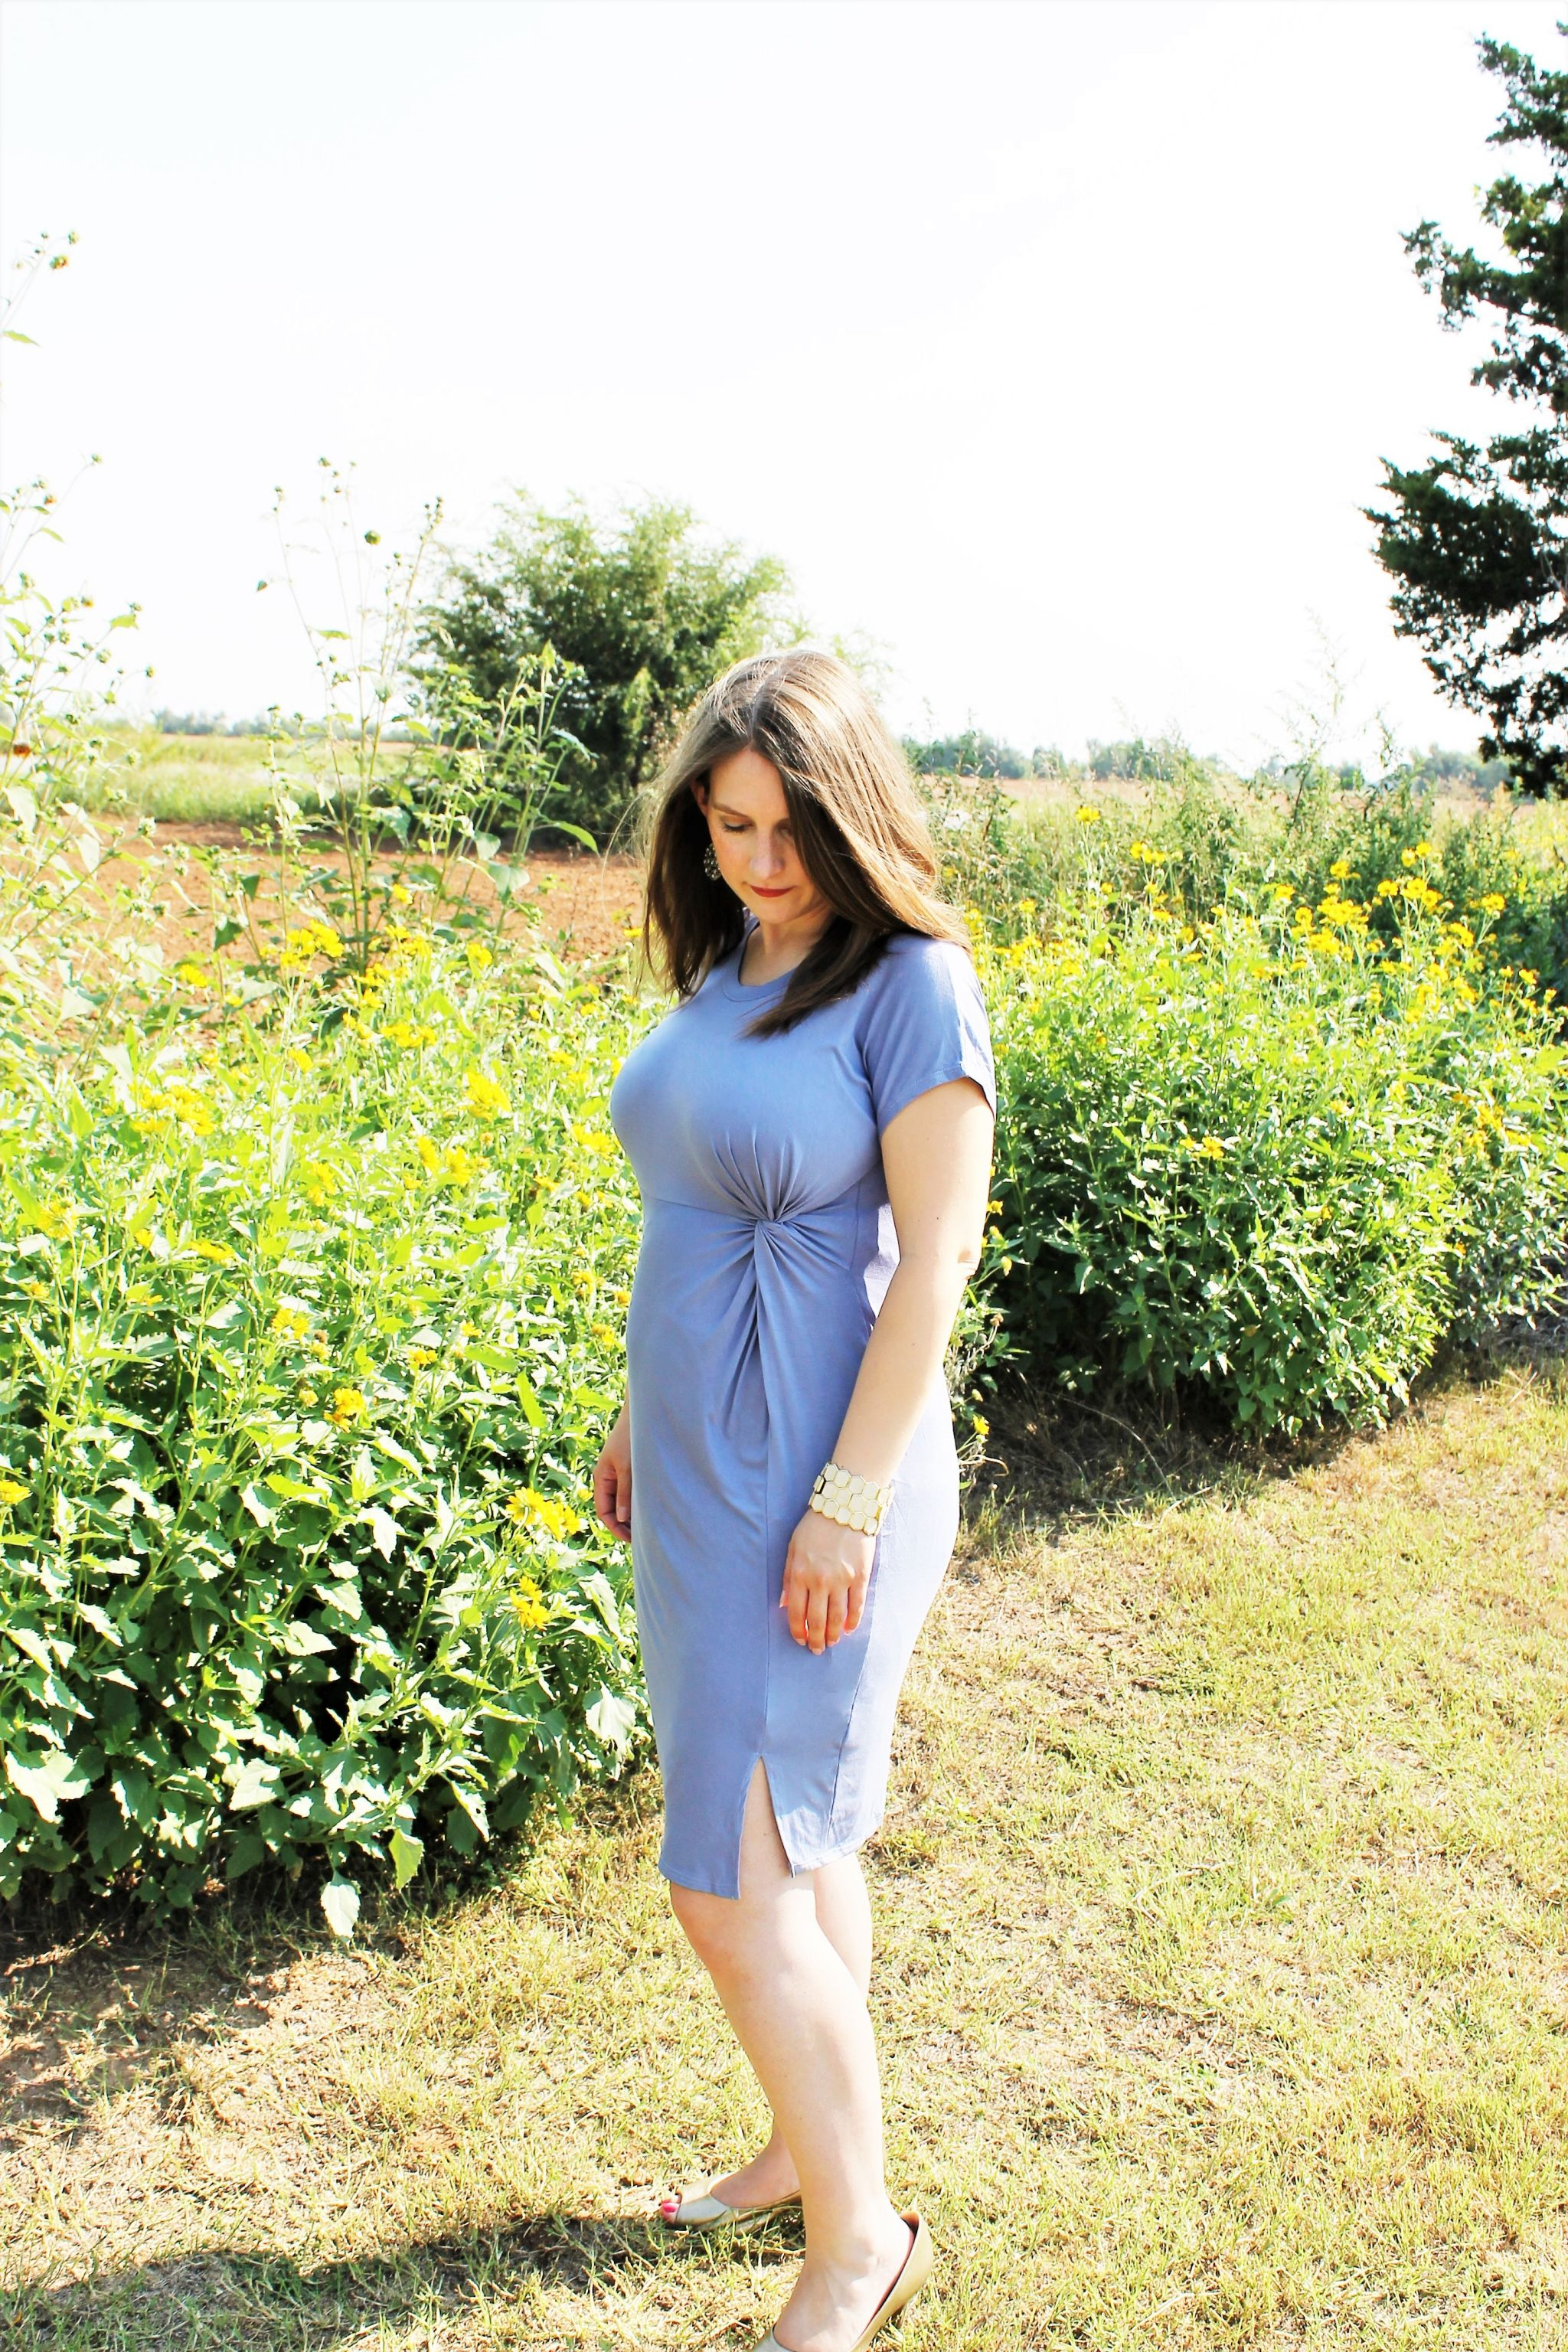 PinkBlush Periwinkle Knot Tie Maternity Dress on JK Style